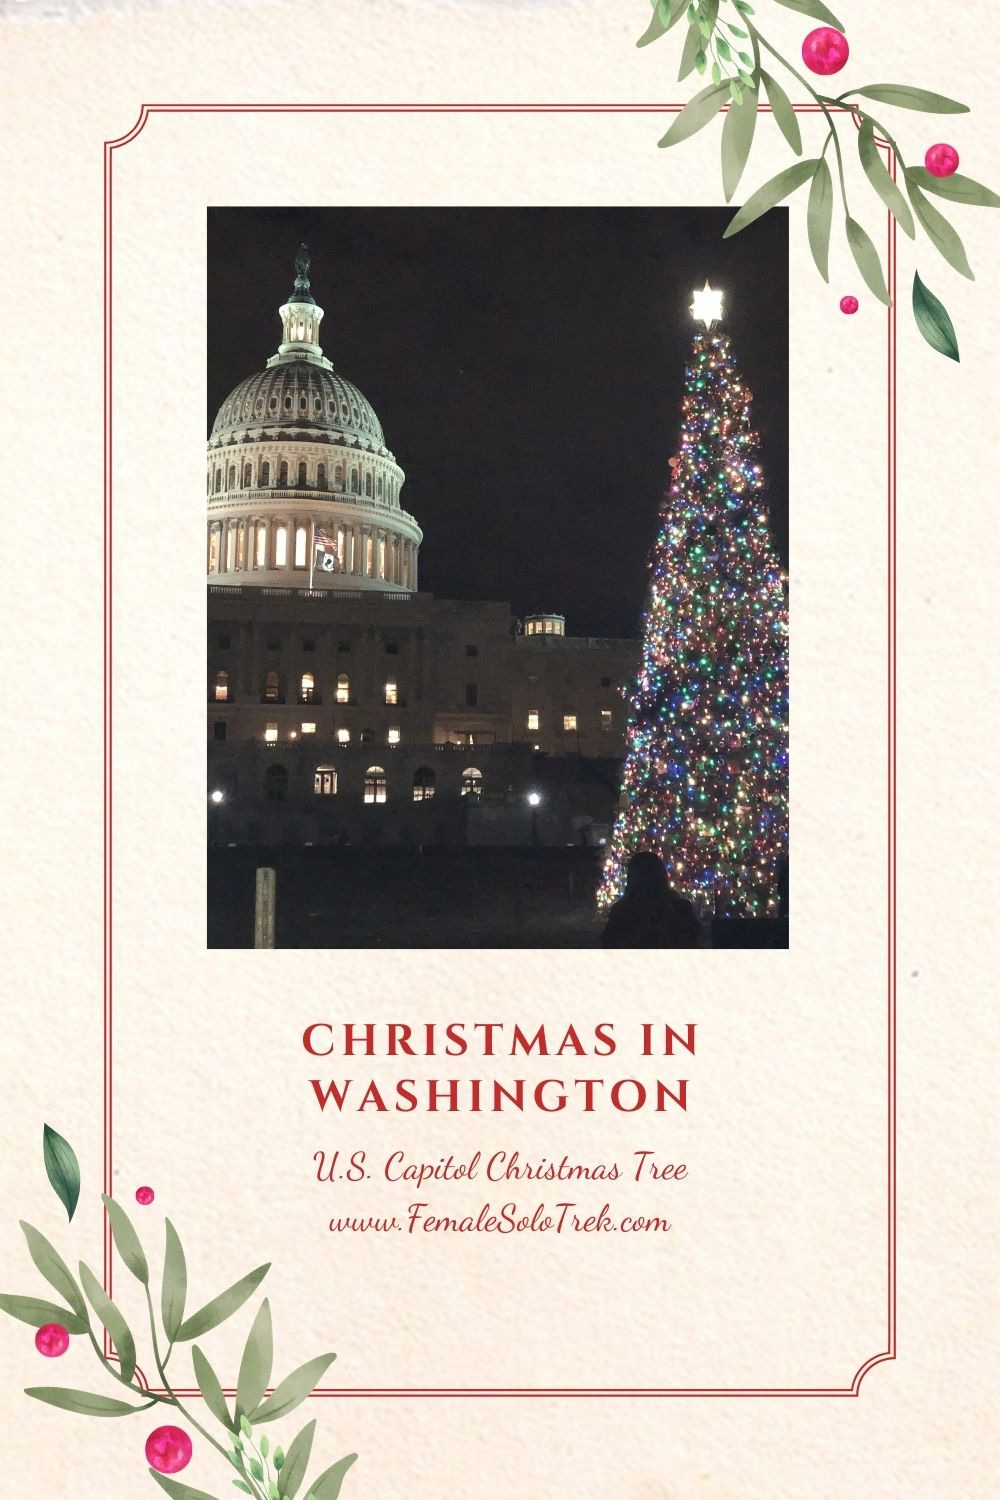 The U.S. Capitol Christmas tree features a different type each year.